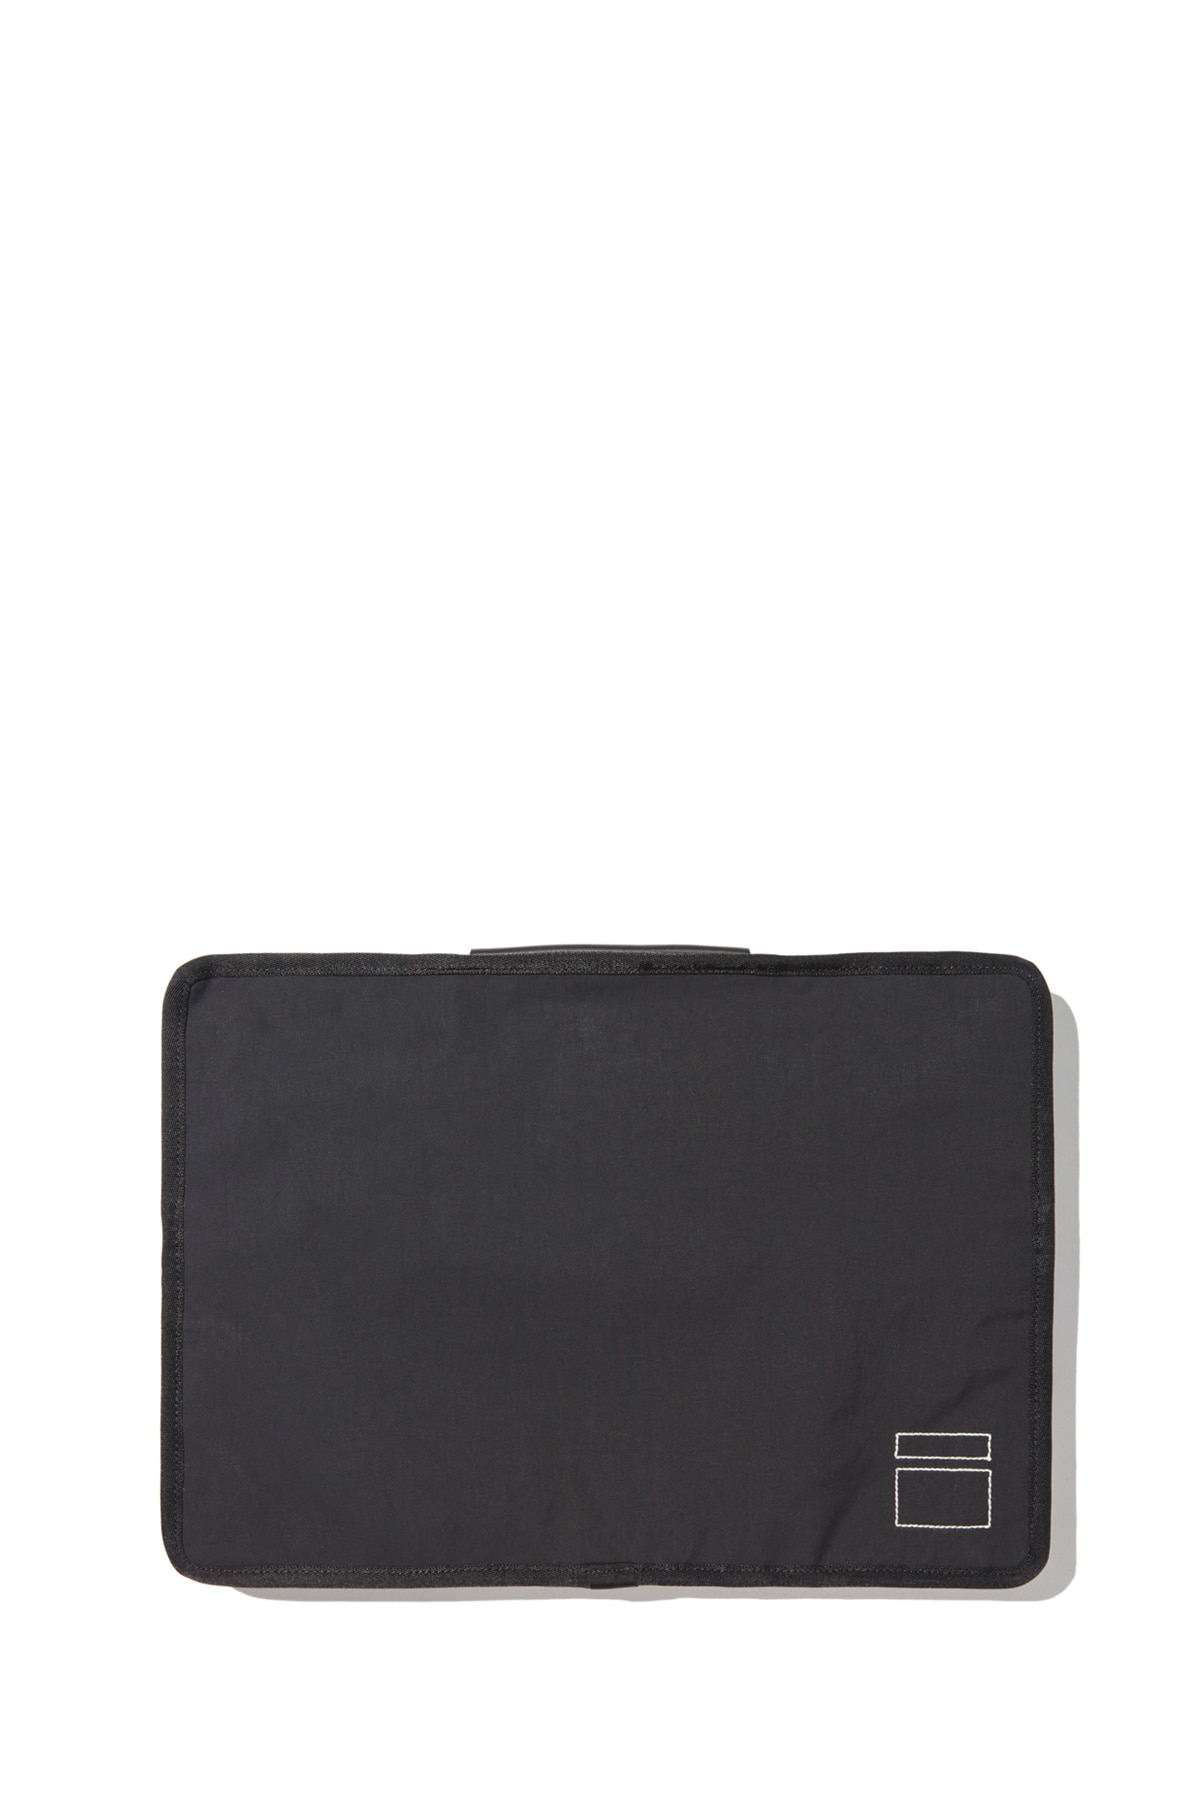 Blankof : CLG 01 AM15 Macbook Case 15 (Black)